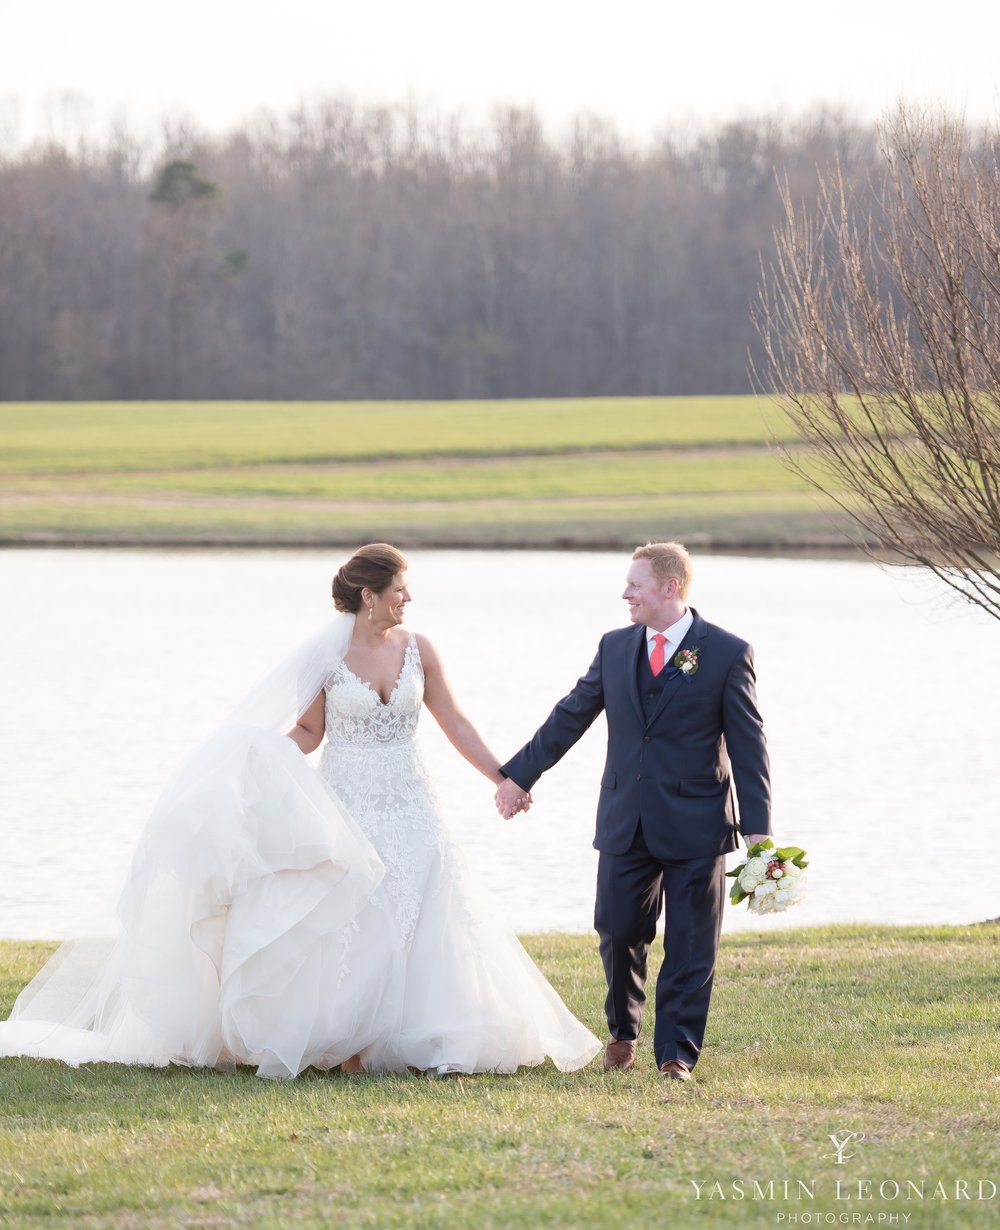 Adaumont Farm - Adaumont Farm Weddings - Trinity Weddings - NC Weddings - Yasmin Leonard Photography-49.jpg